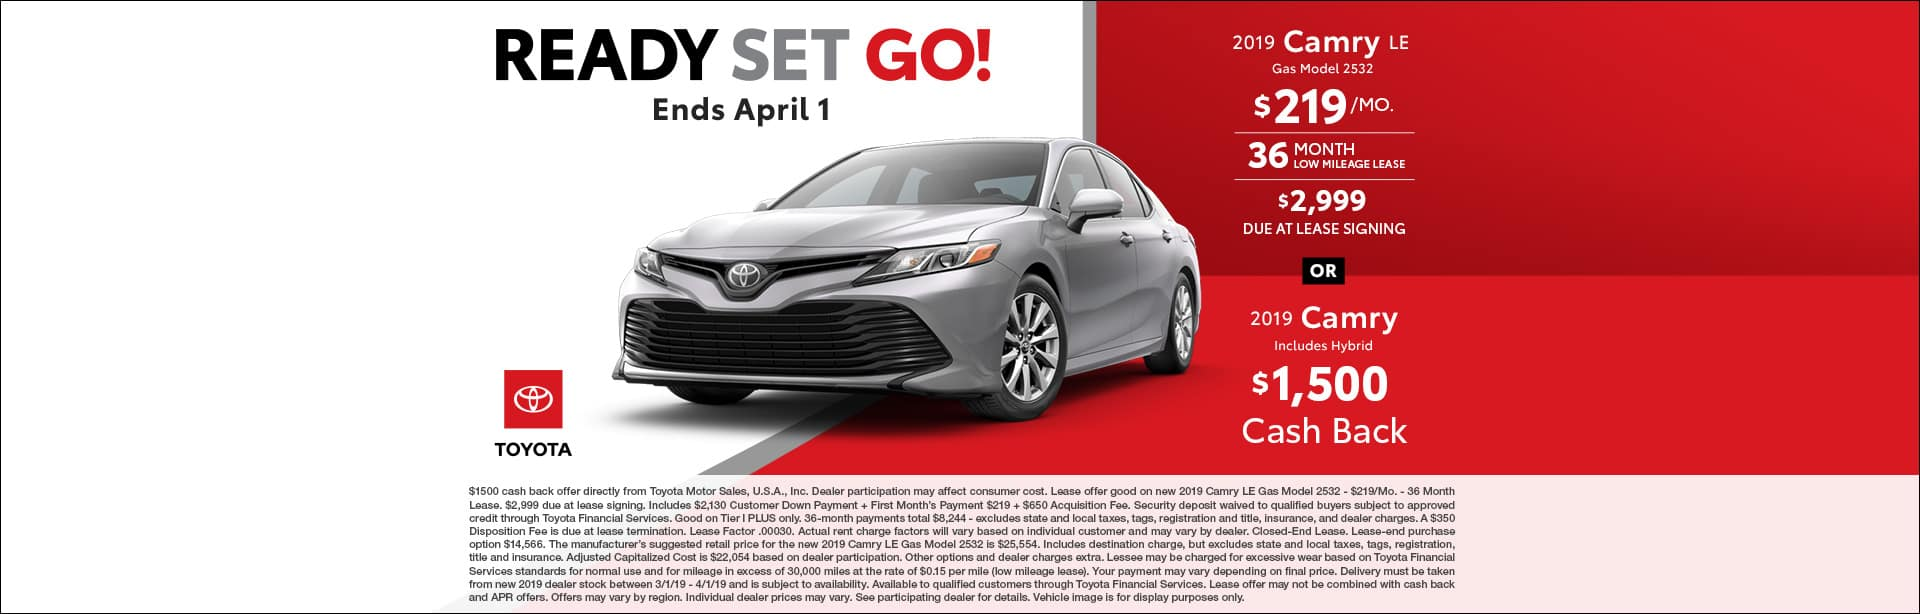 March Camry Deals at Cain Toyota